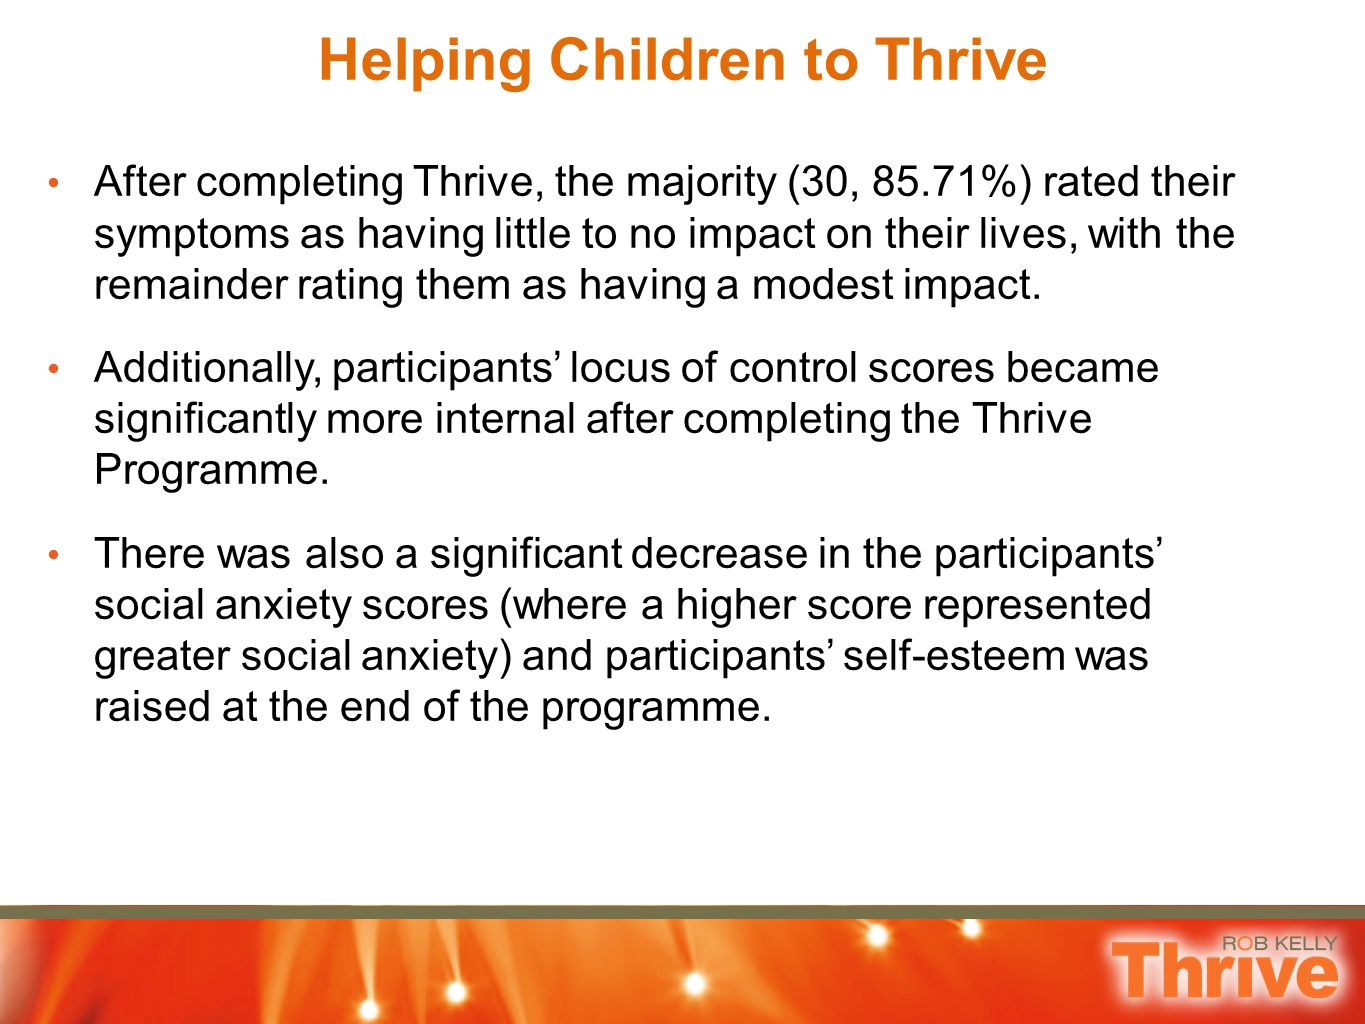 Helping Children to Thrive After completing Thrive, the majority (30, 85.71%) rated their symptoms as having little to no impact on their lives, with